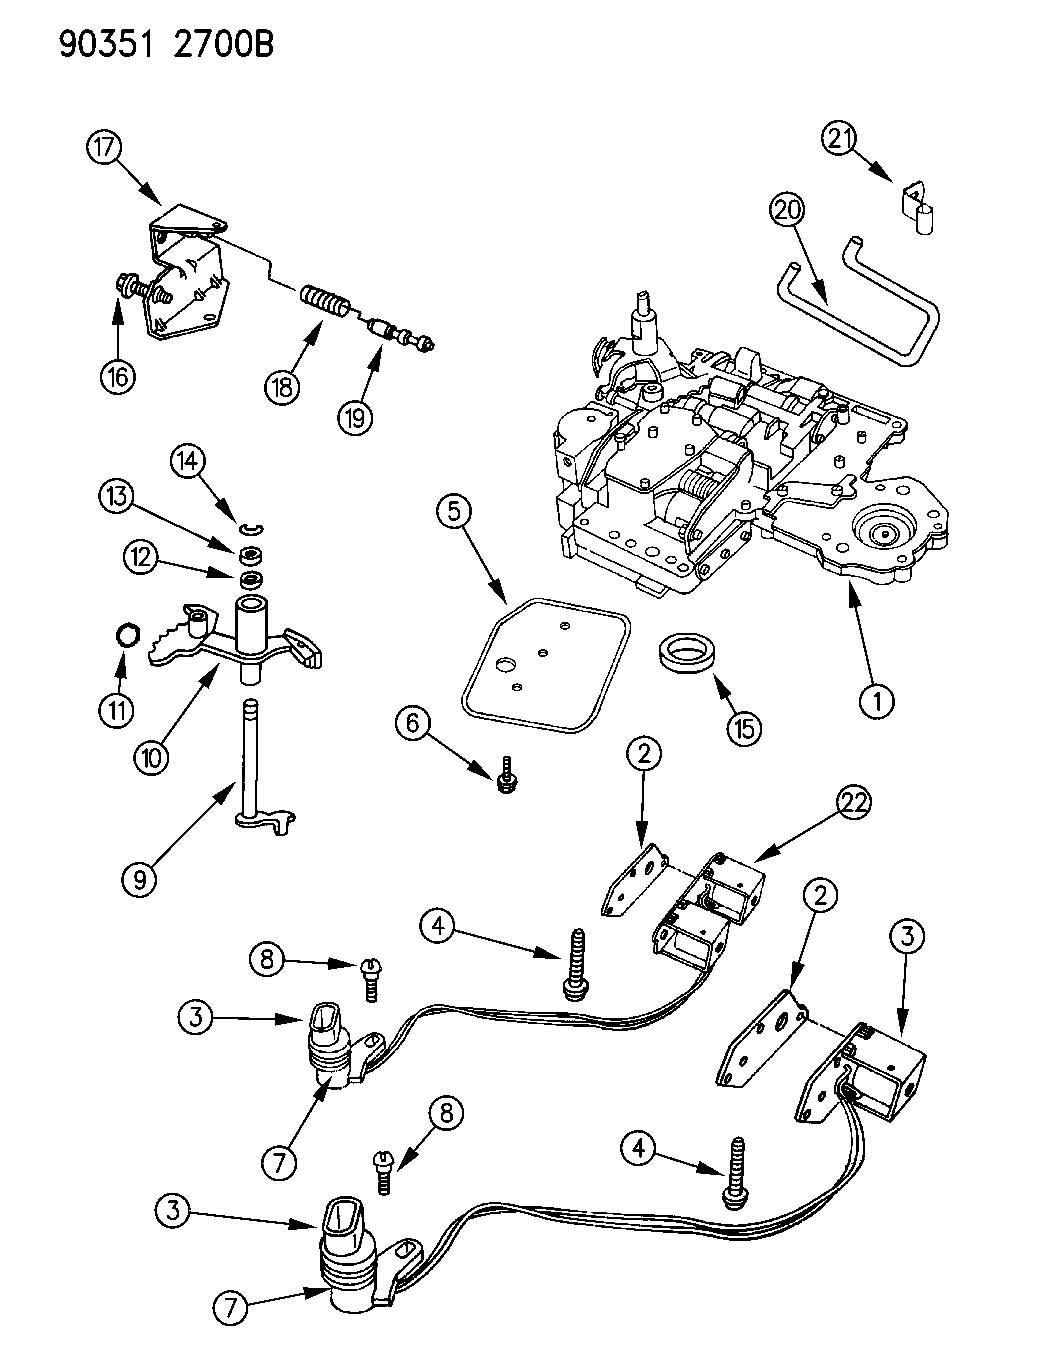 727 Torqueflite Transmission Exploded View